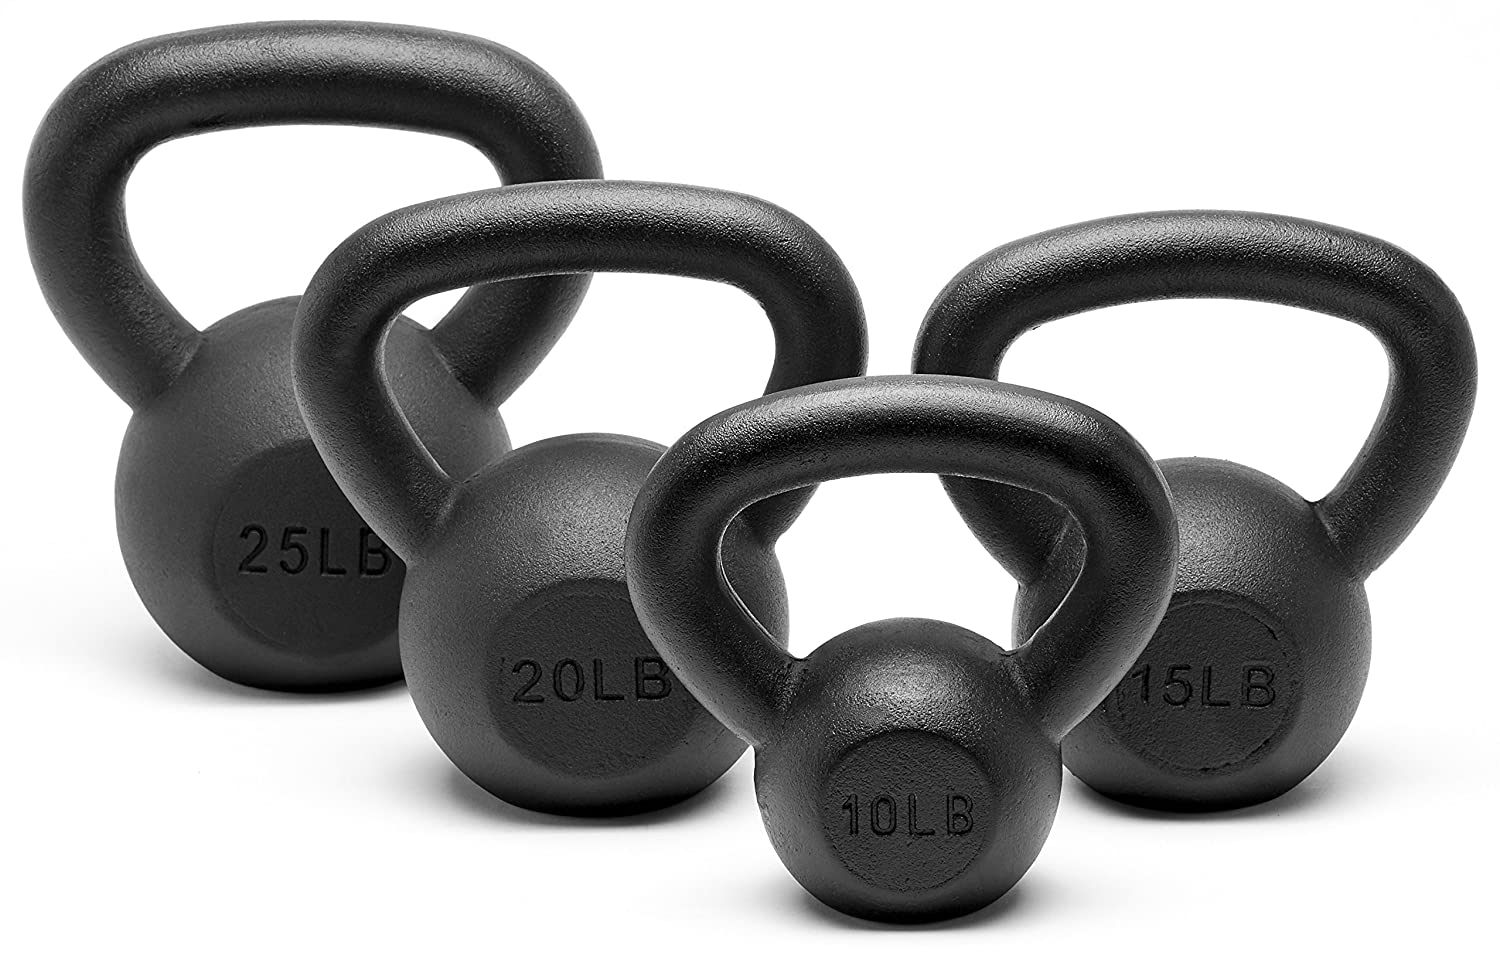 Unipack Powder Coated Solid Cast Iron Kettlebell Weights Set 5, 10 15, 20, 25, 30, 35, 40, 45 lbs All Combination